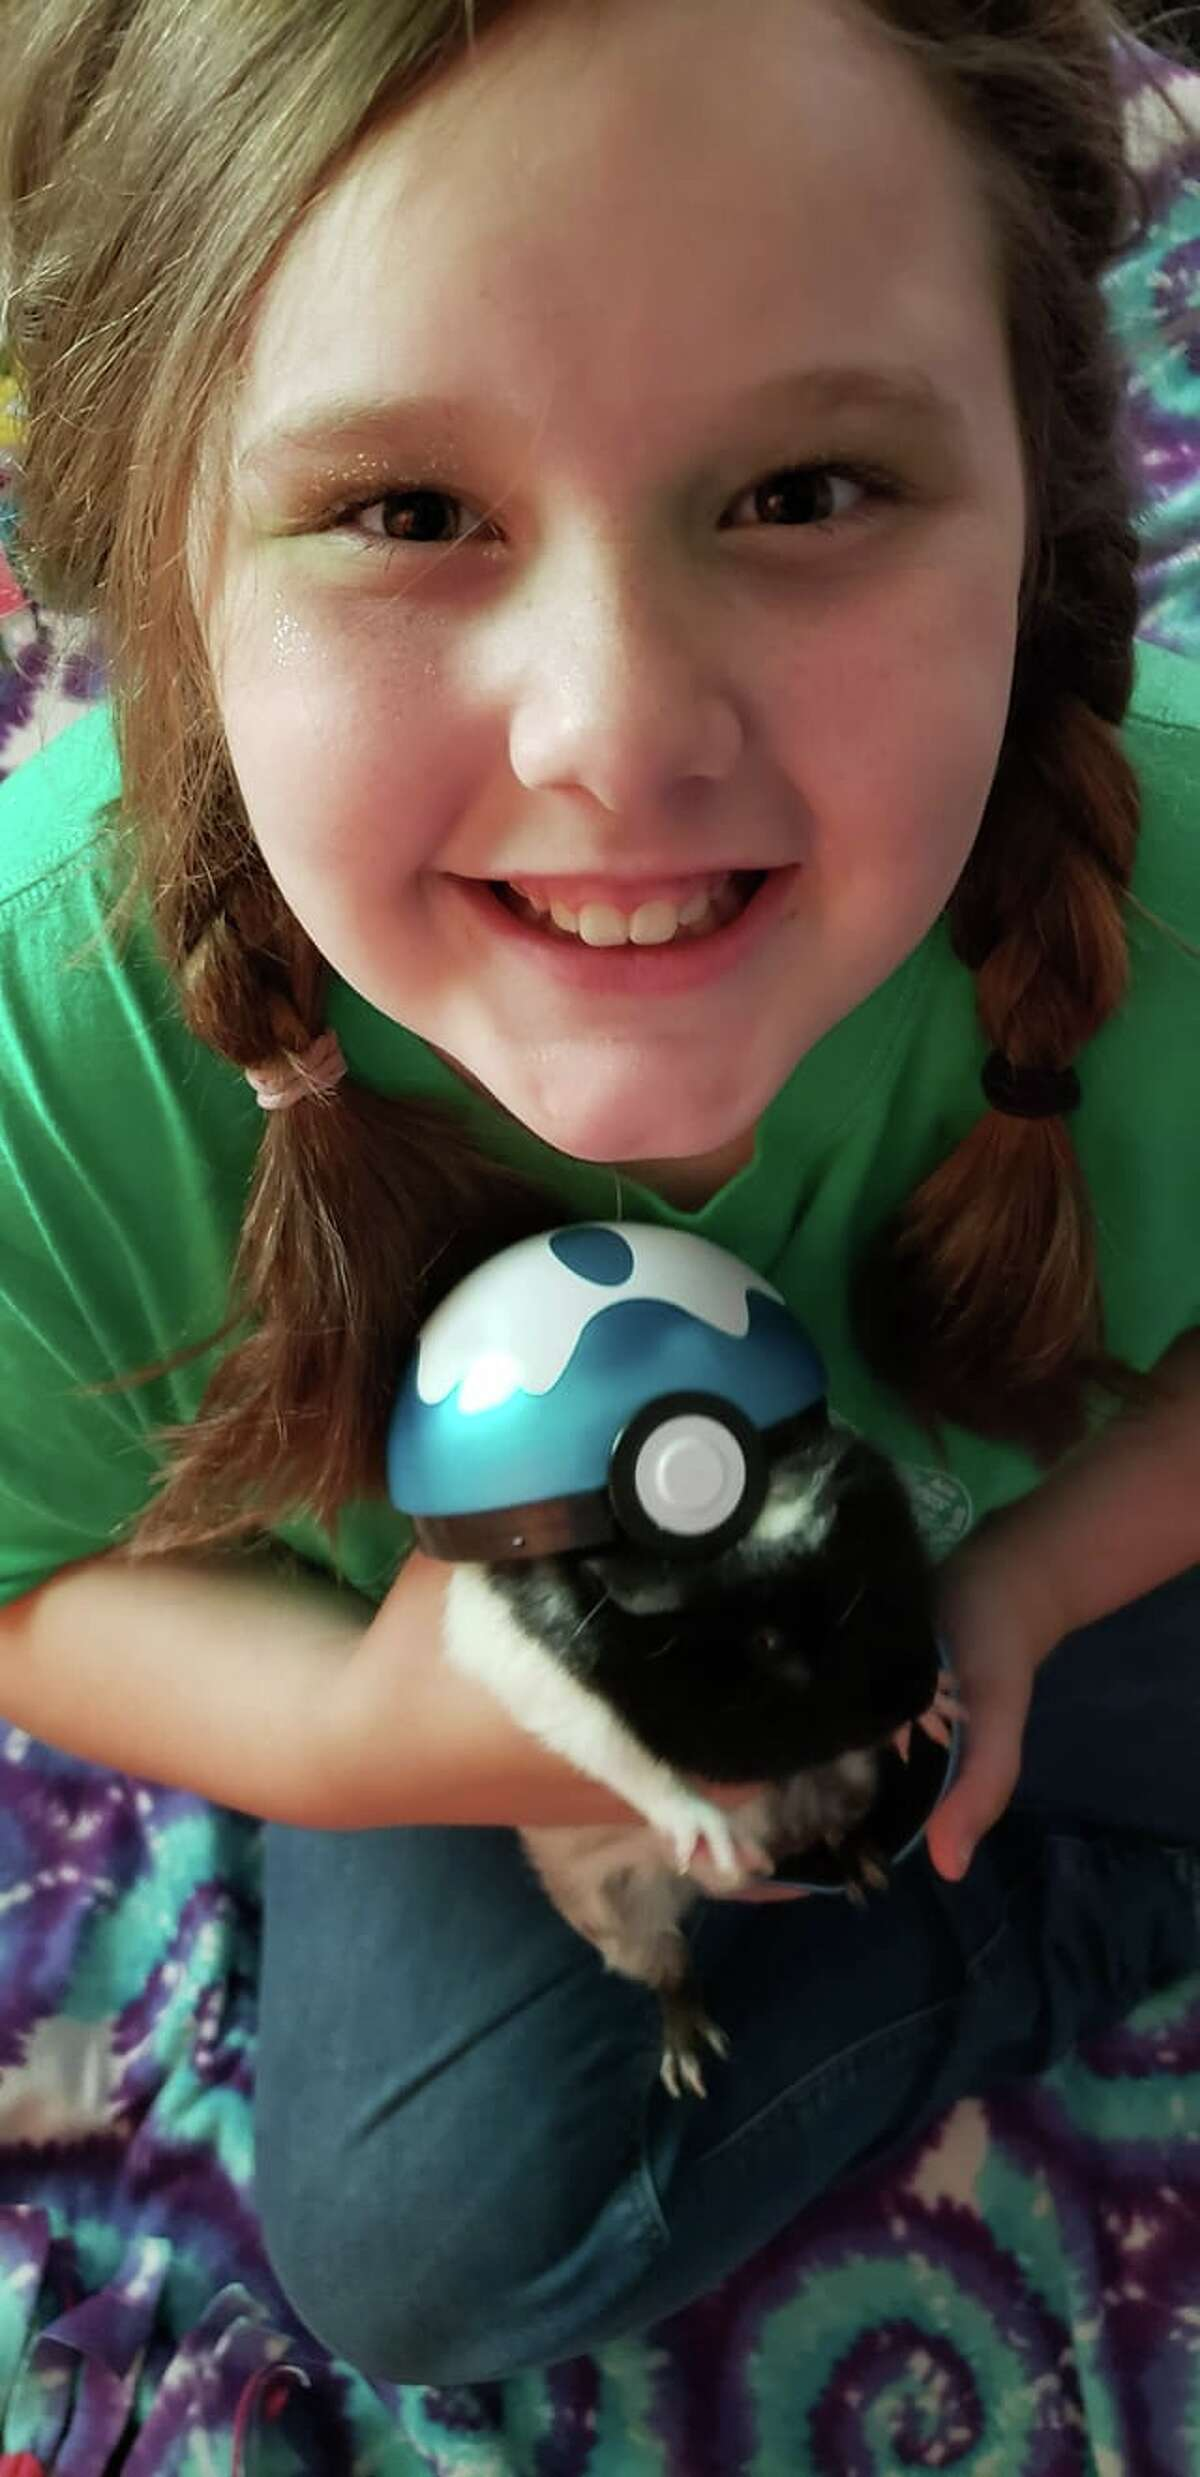 Chloey Oates with her Cavy Jack. This would've been her first year showing cavies with the Grant Center Pioneers.